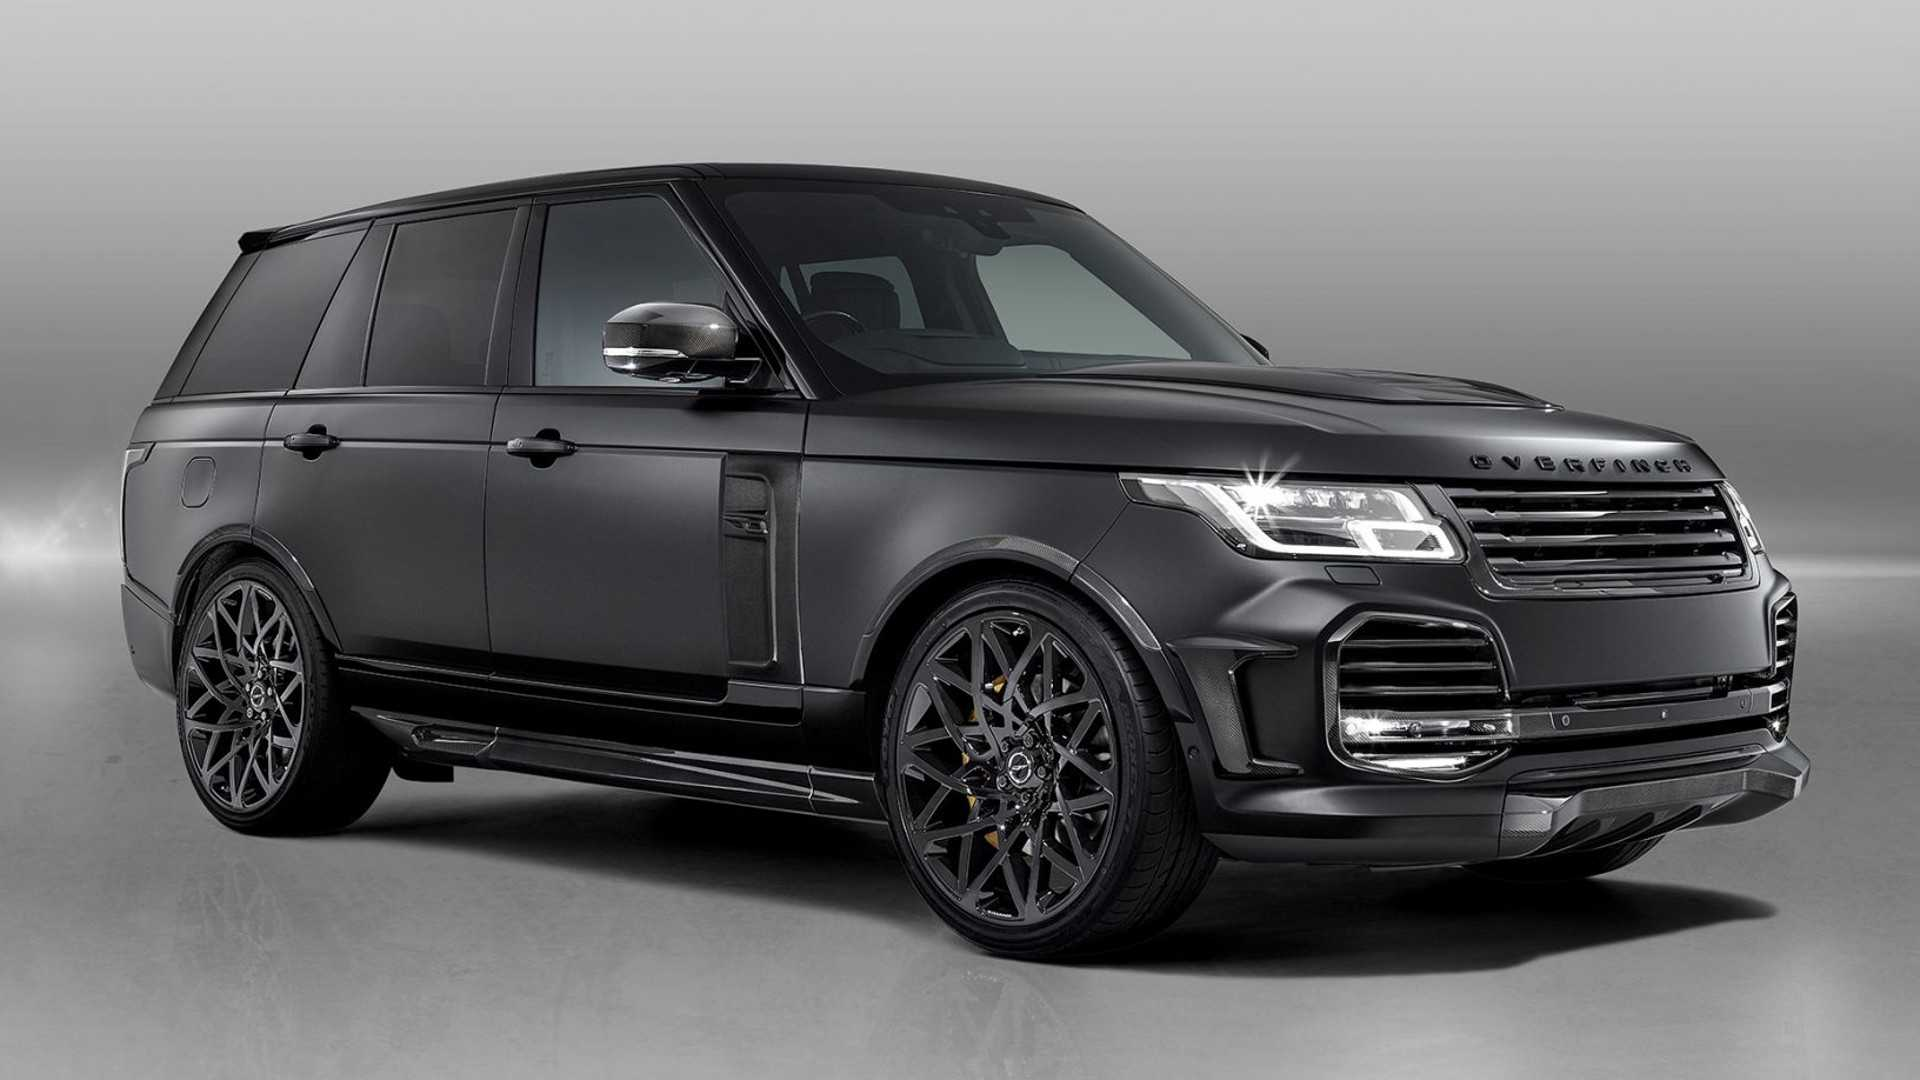 Overfinch Velocity is an opulent £245,000 Range Rover